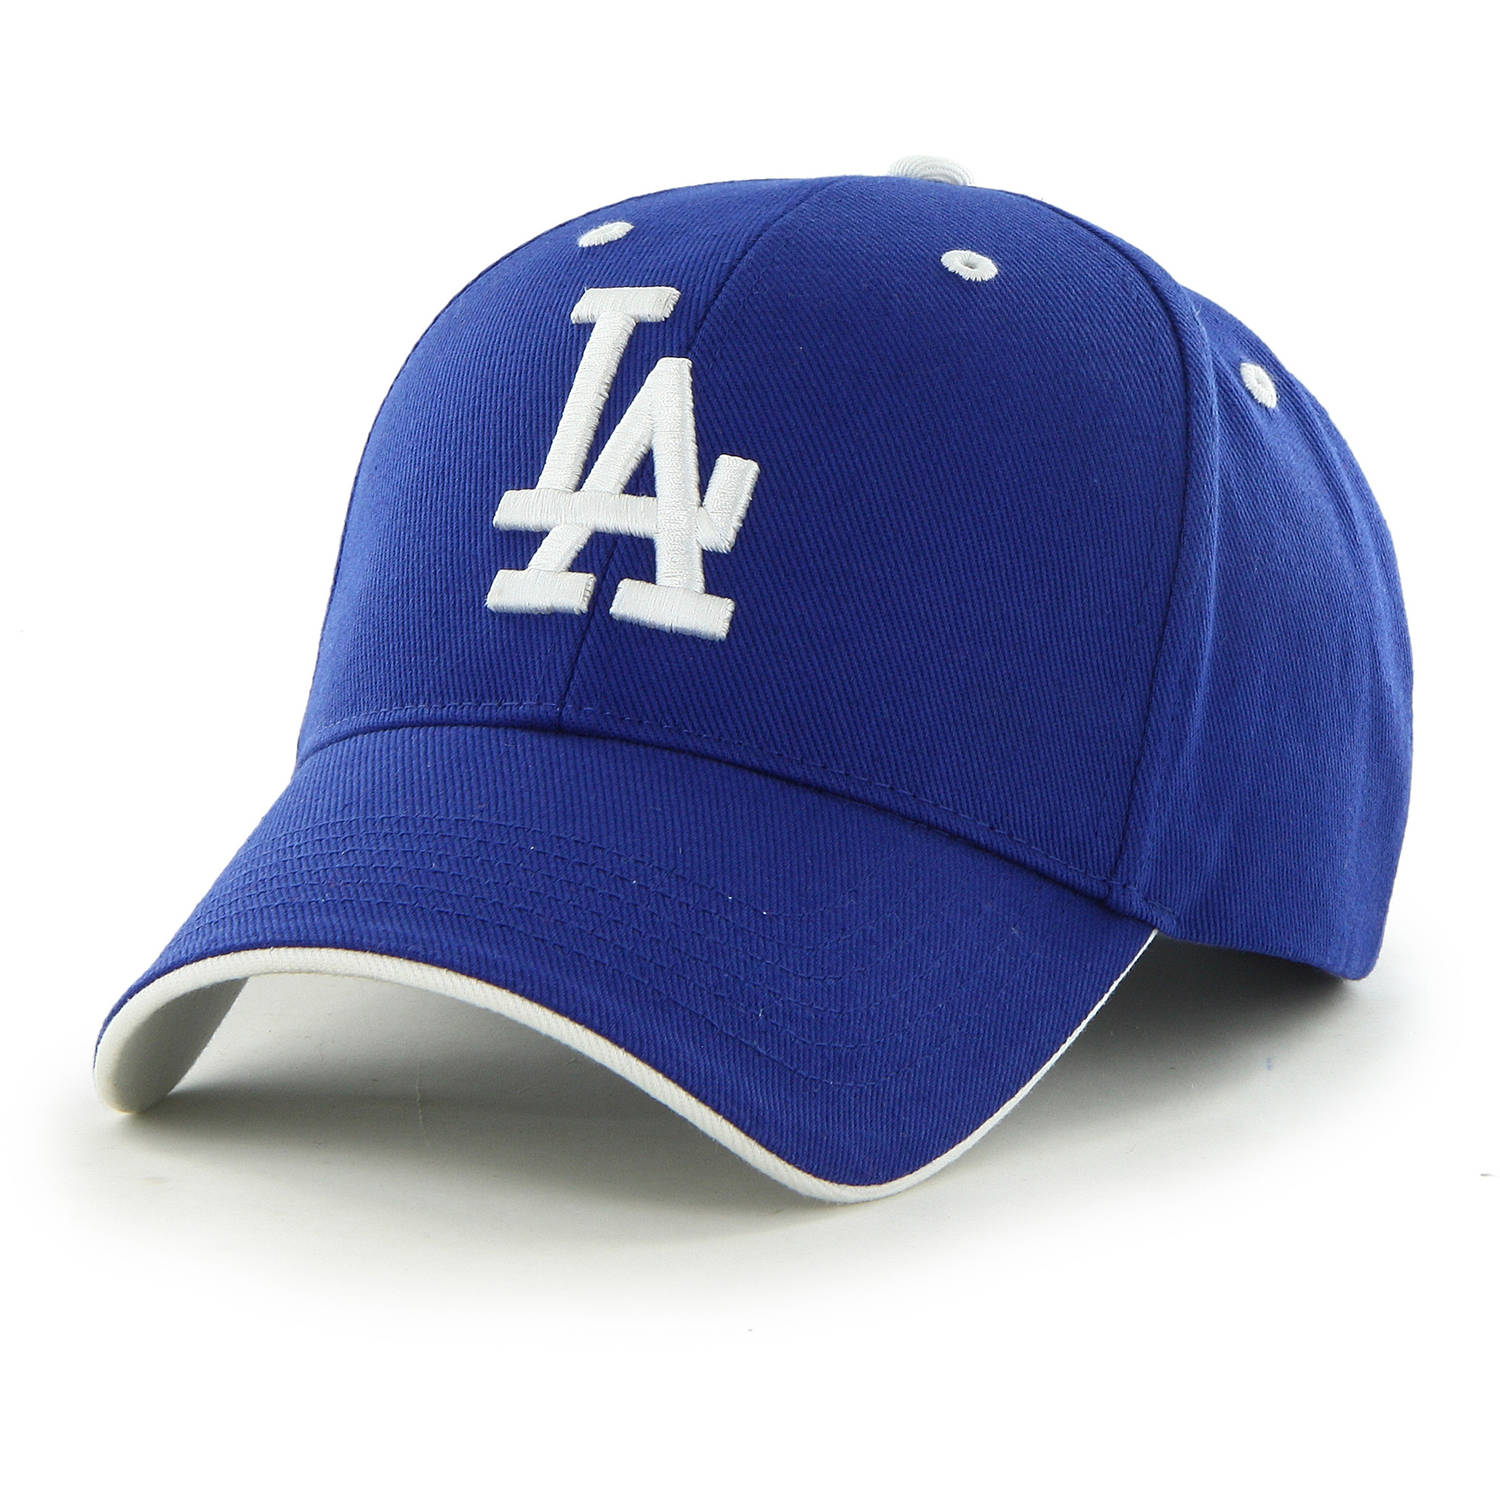 MLB Los Angeles Dodgers Money Maker Youth Cap / Hat by Fan Favorite